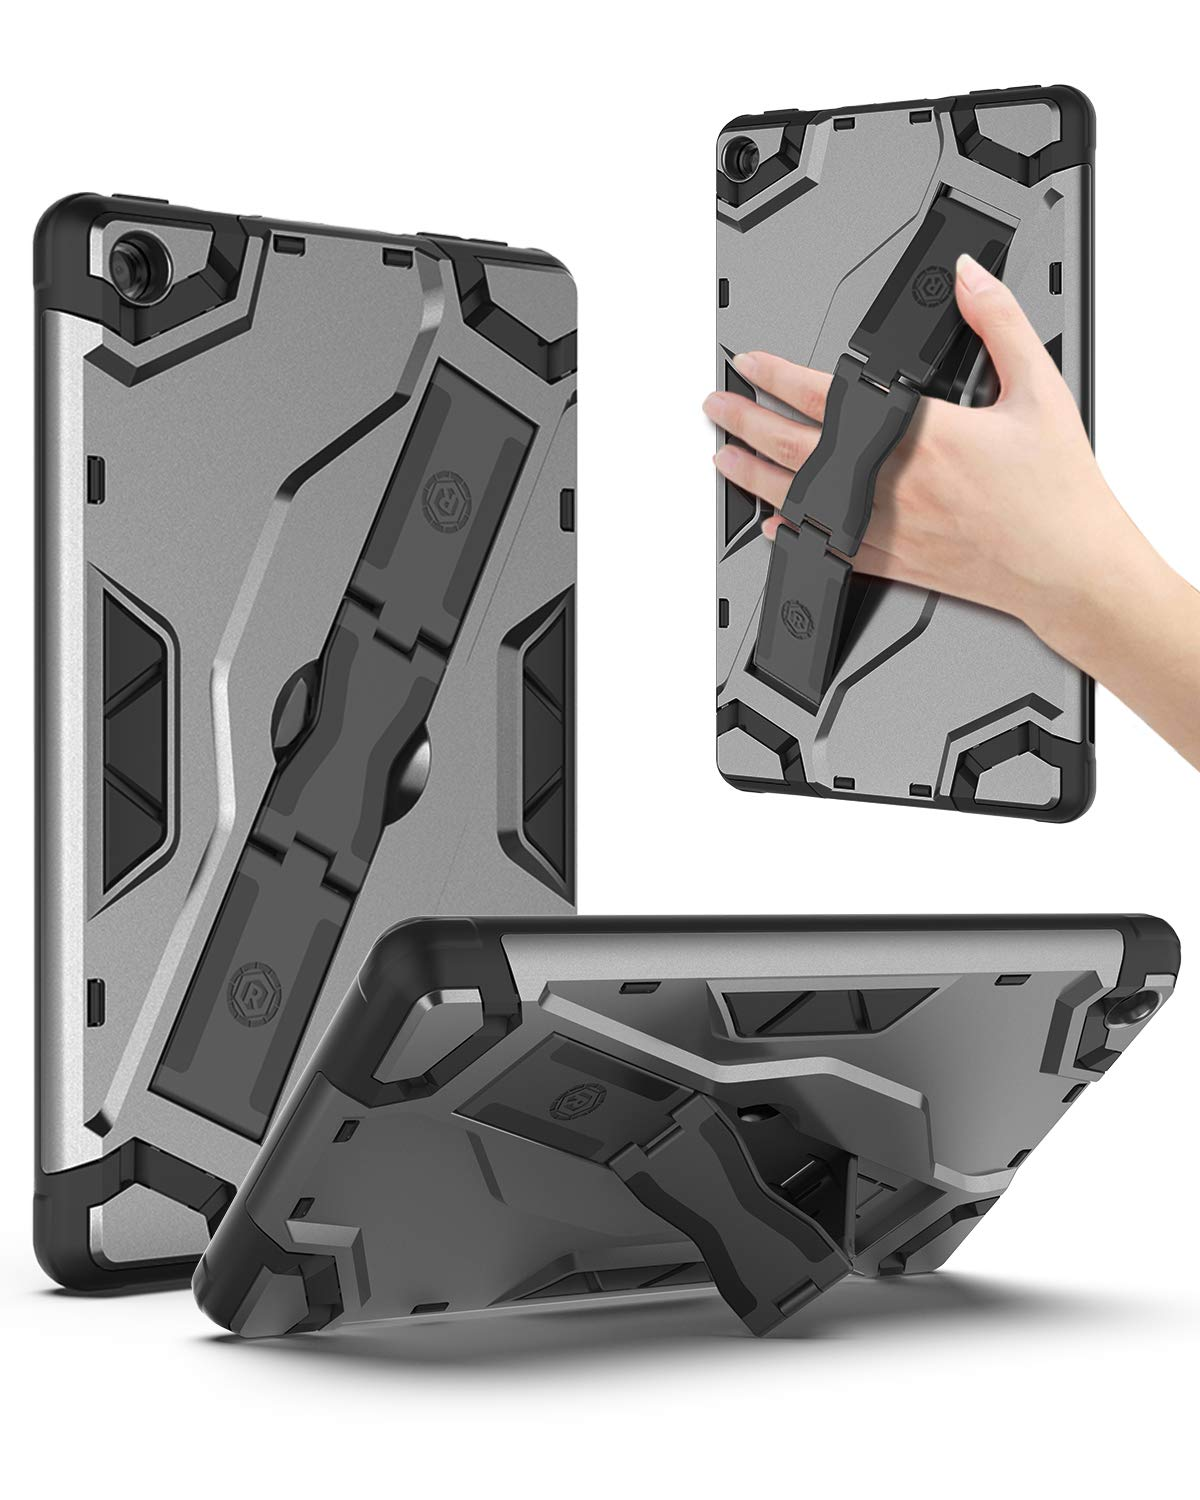 ROISKIN All-New Amazon Fire 7 Tablet Case (9th Generation, 2019 Release) [Kickstand/Hand Strap] Full-Body Shockproof Rugged Impact Resistant Soft TPU with Stand Protective Kinlde Fire 7 Case - Black